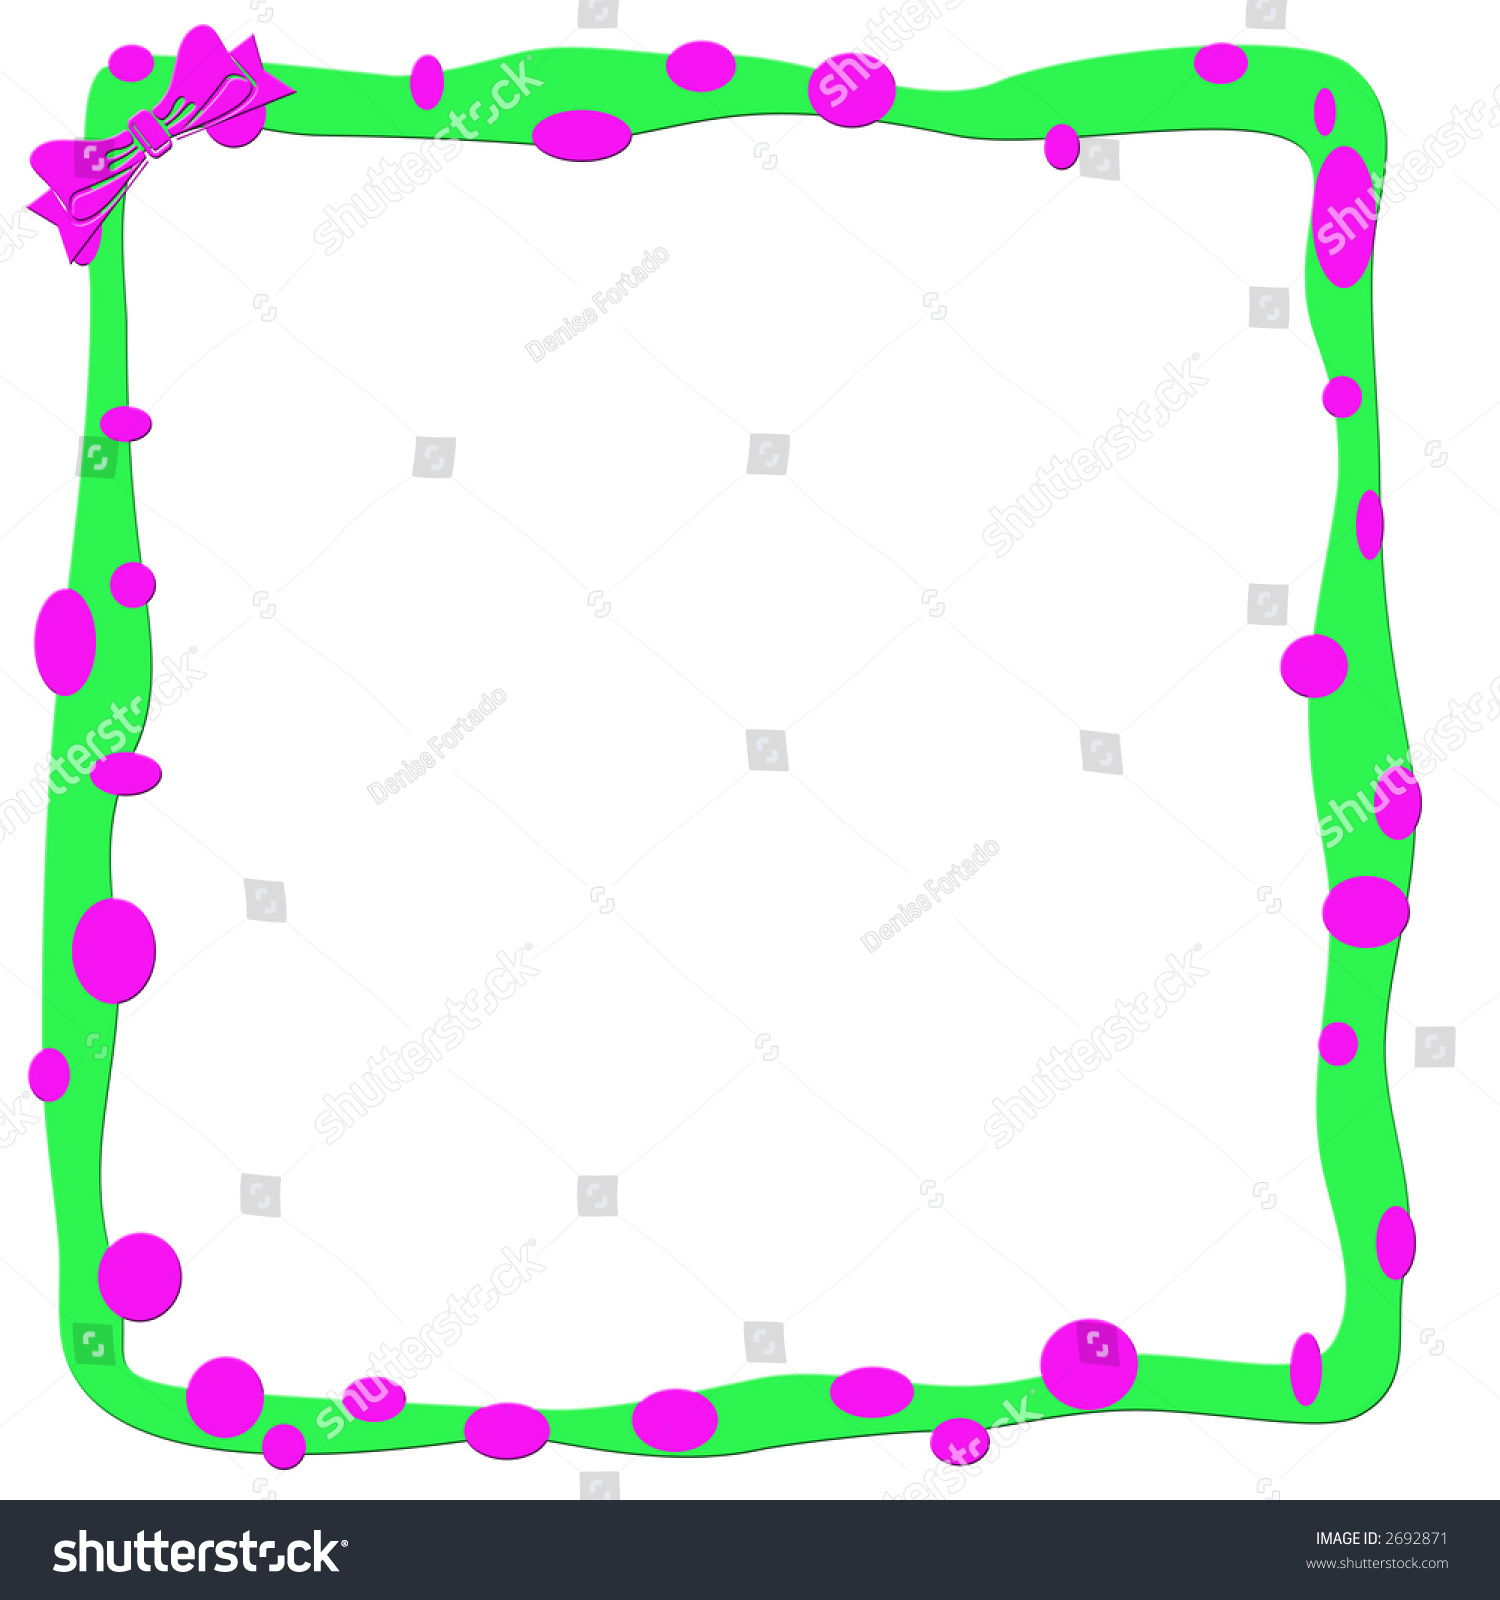 Illustrated pink green girlish page frame stock illustration illustrated pink and green girlish page frame jeuxipadfo Images